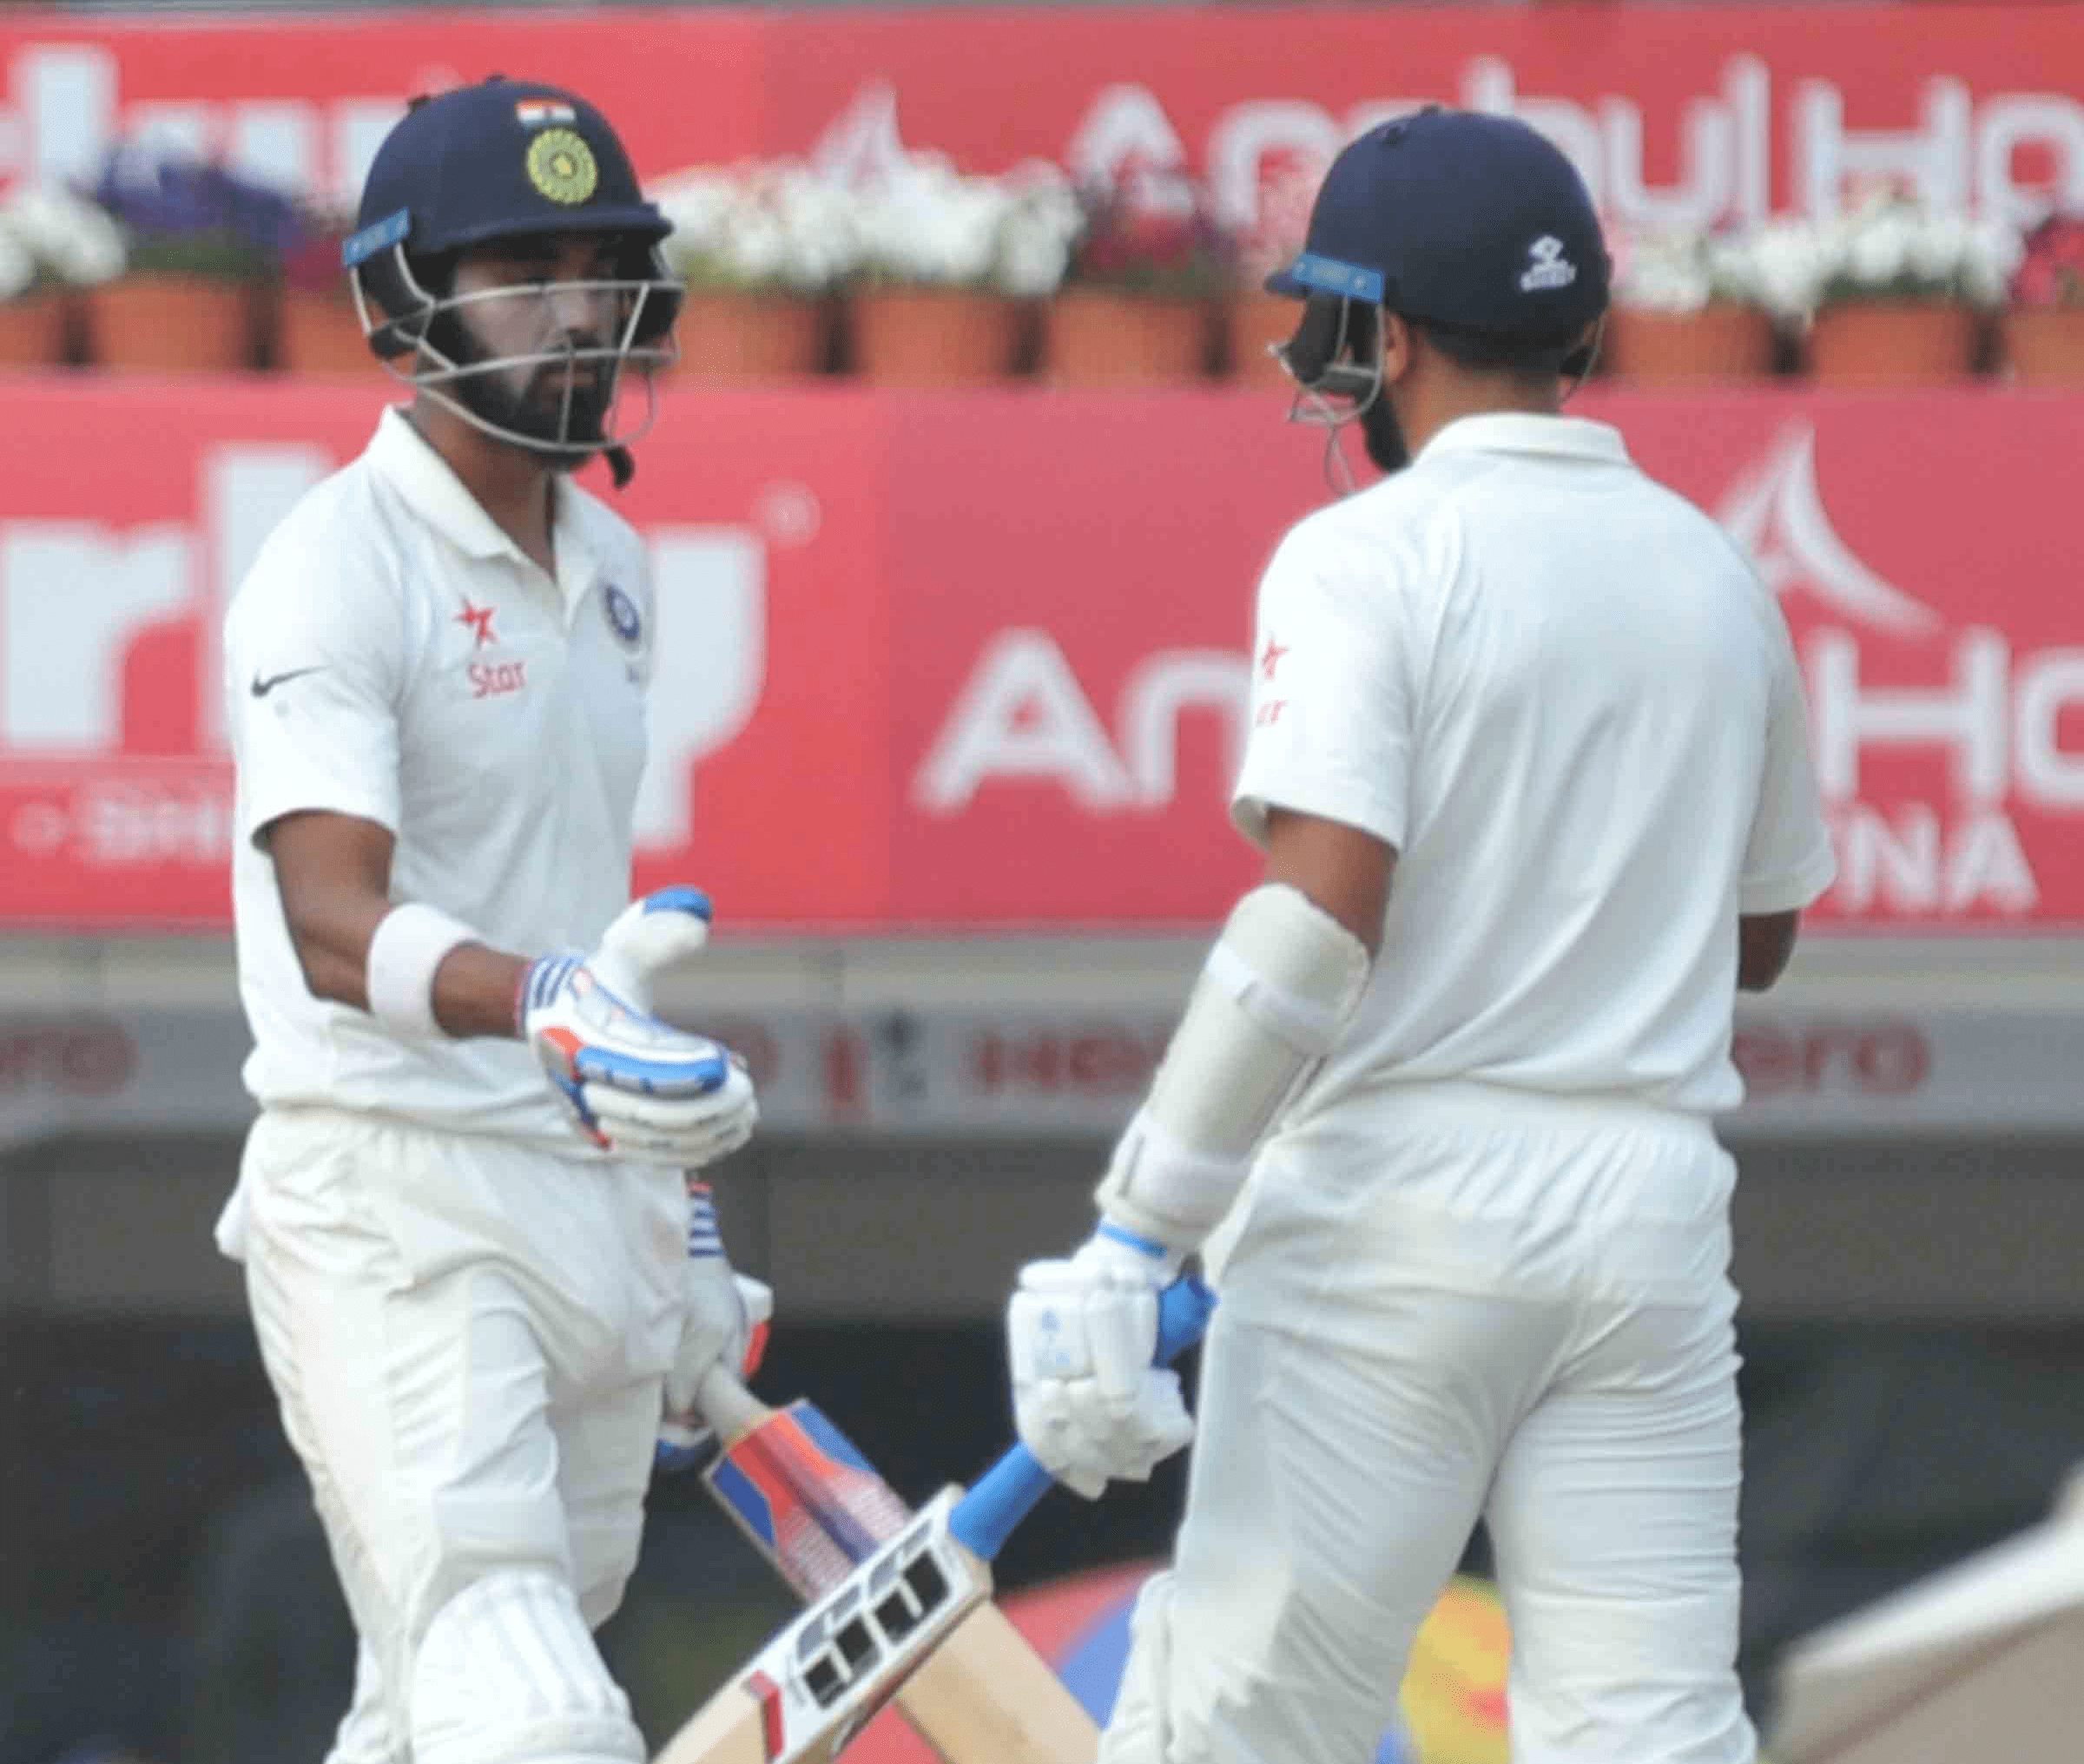 <p>KL Rahul scored his fifth Test half century as India are 81/0 on Day 2, after Ravindra Jadeja claimed his eighth five-wicket haul in Test cricket to bowl Australia out for 451 on&#8230;